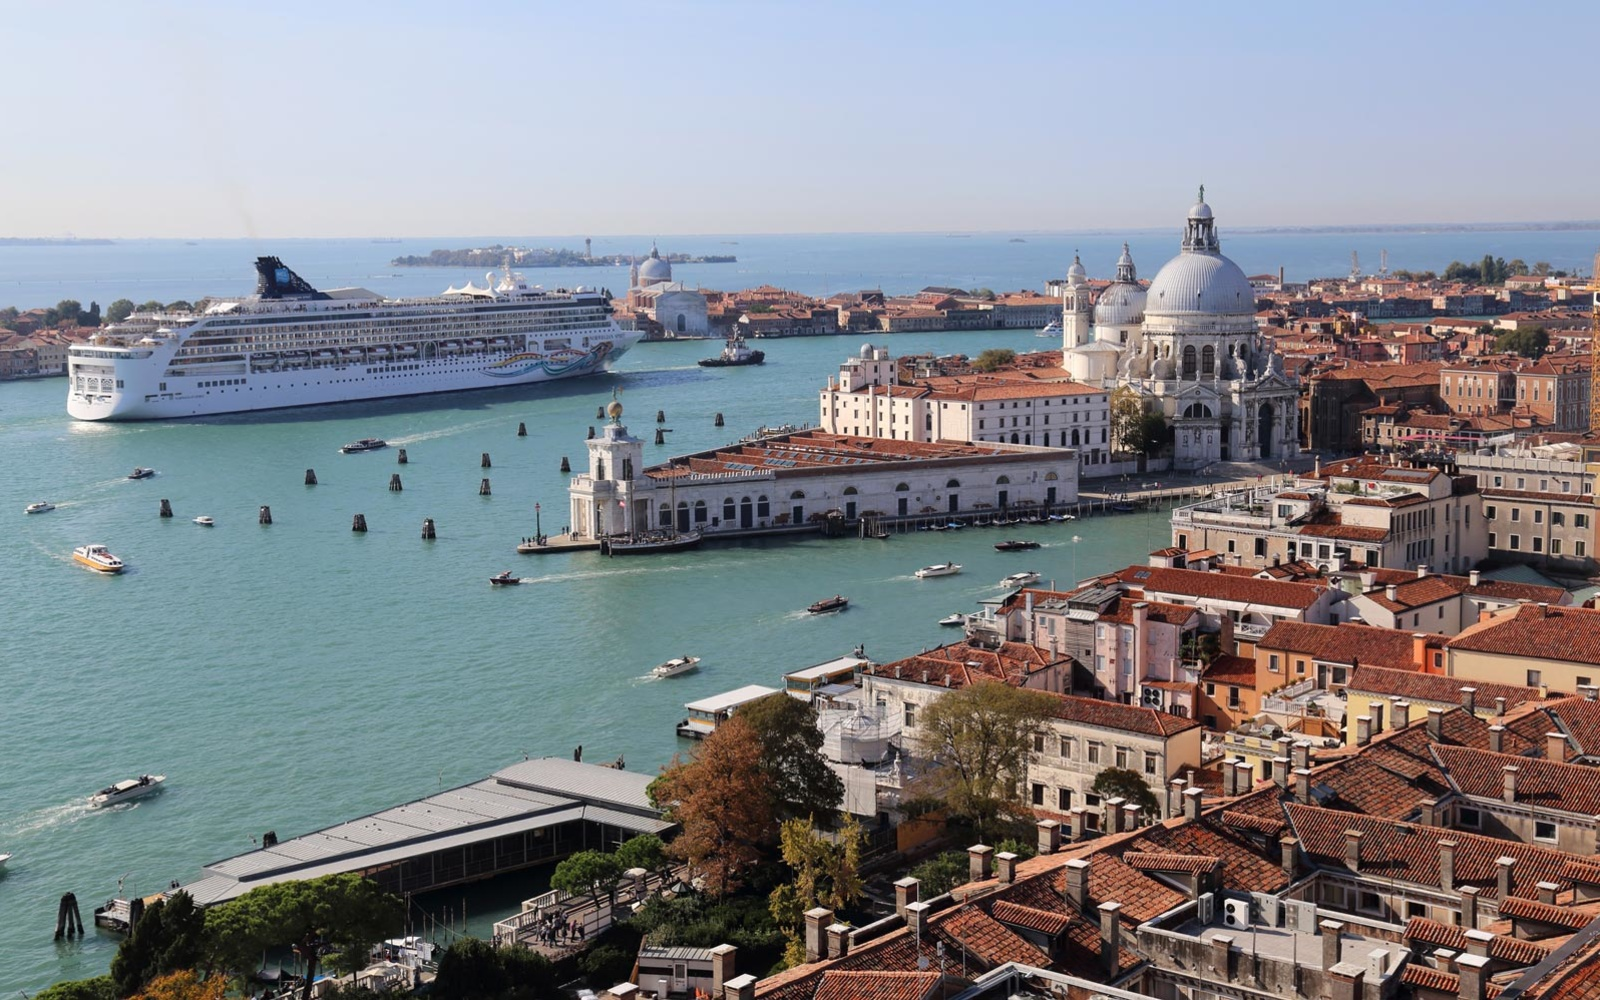 Venice to ban large cruise ships after 10 year battle